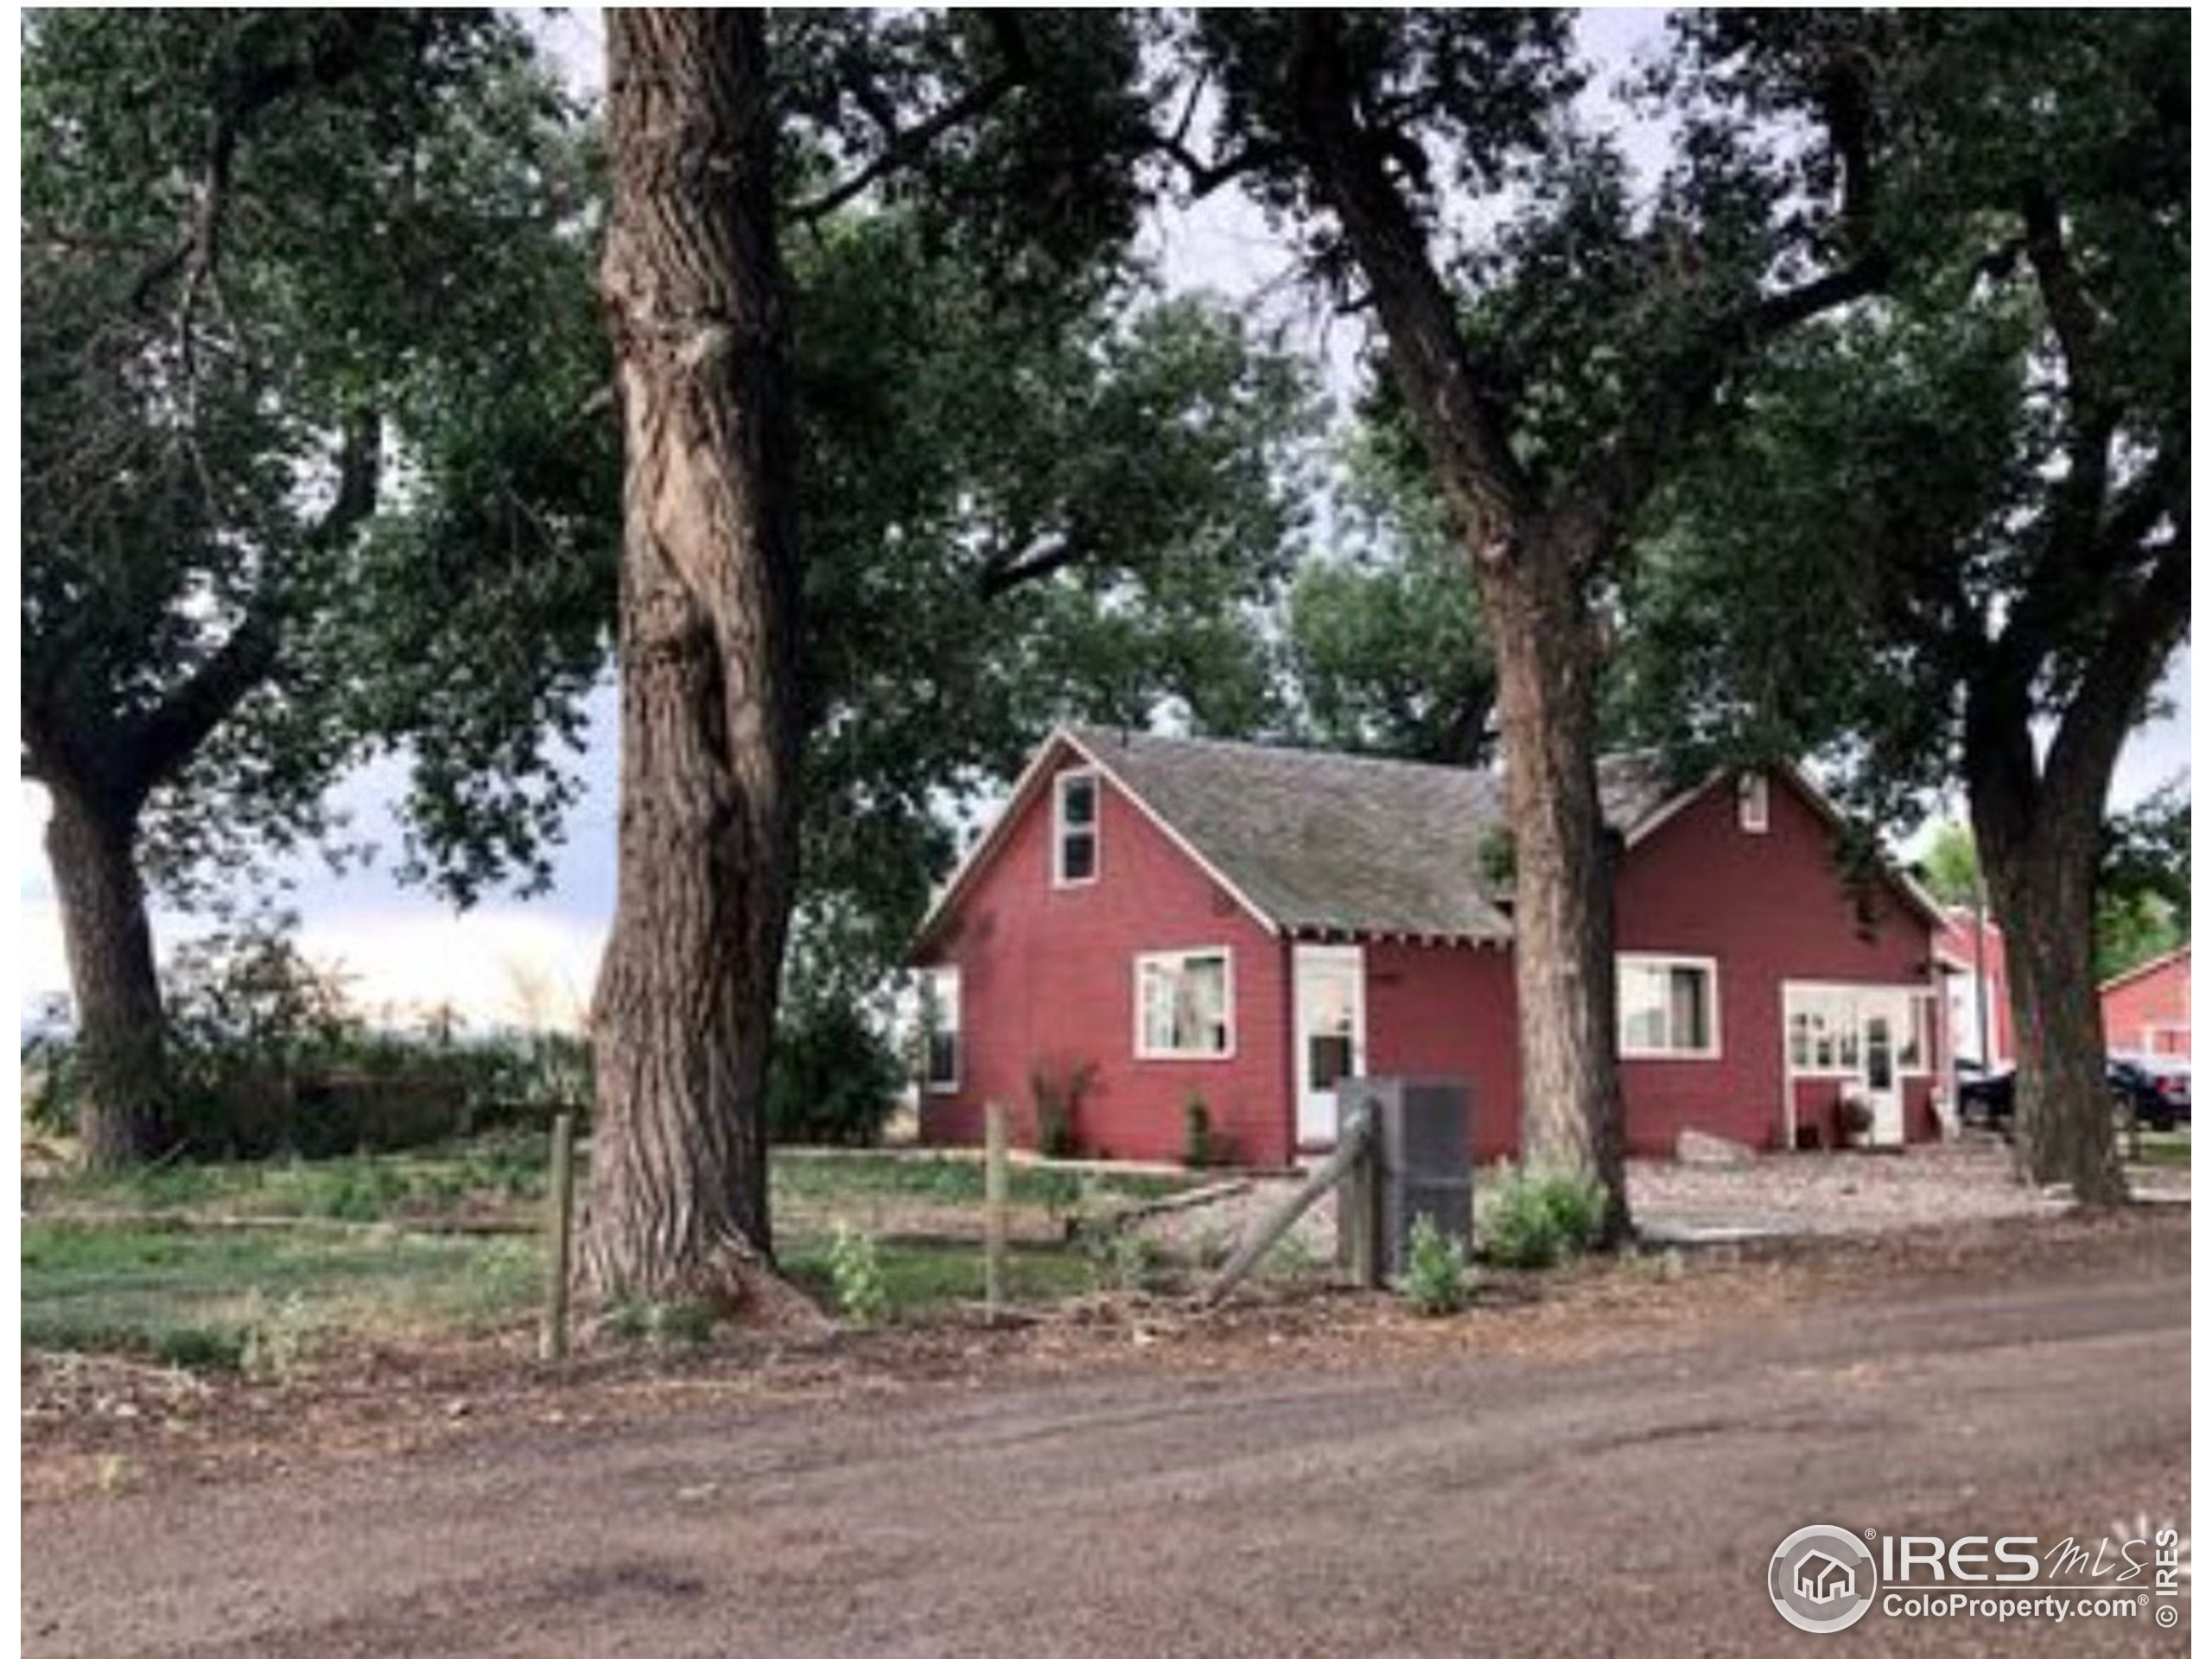 Great views on 3.5 acres in Ault. One of a kind shop with amazing features inside. Within 20 minutes to Fort Collins, Windsor and Severance. Come check out this great property!